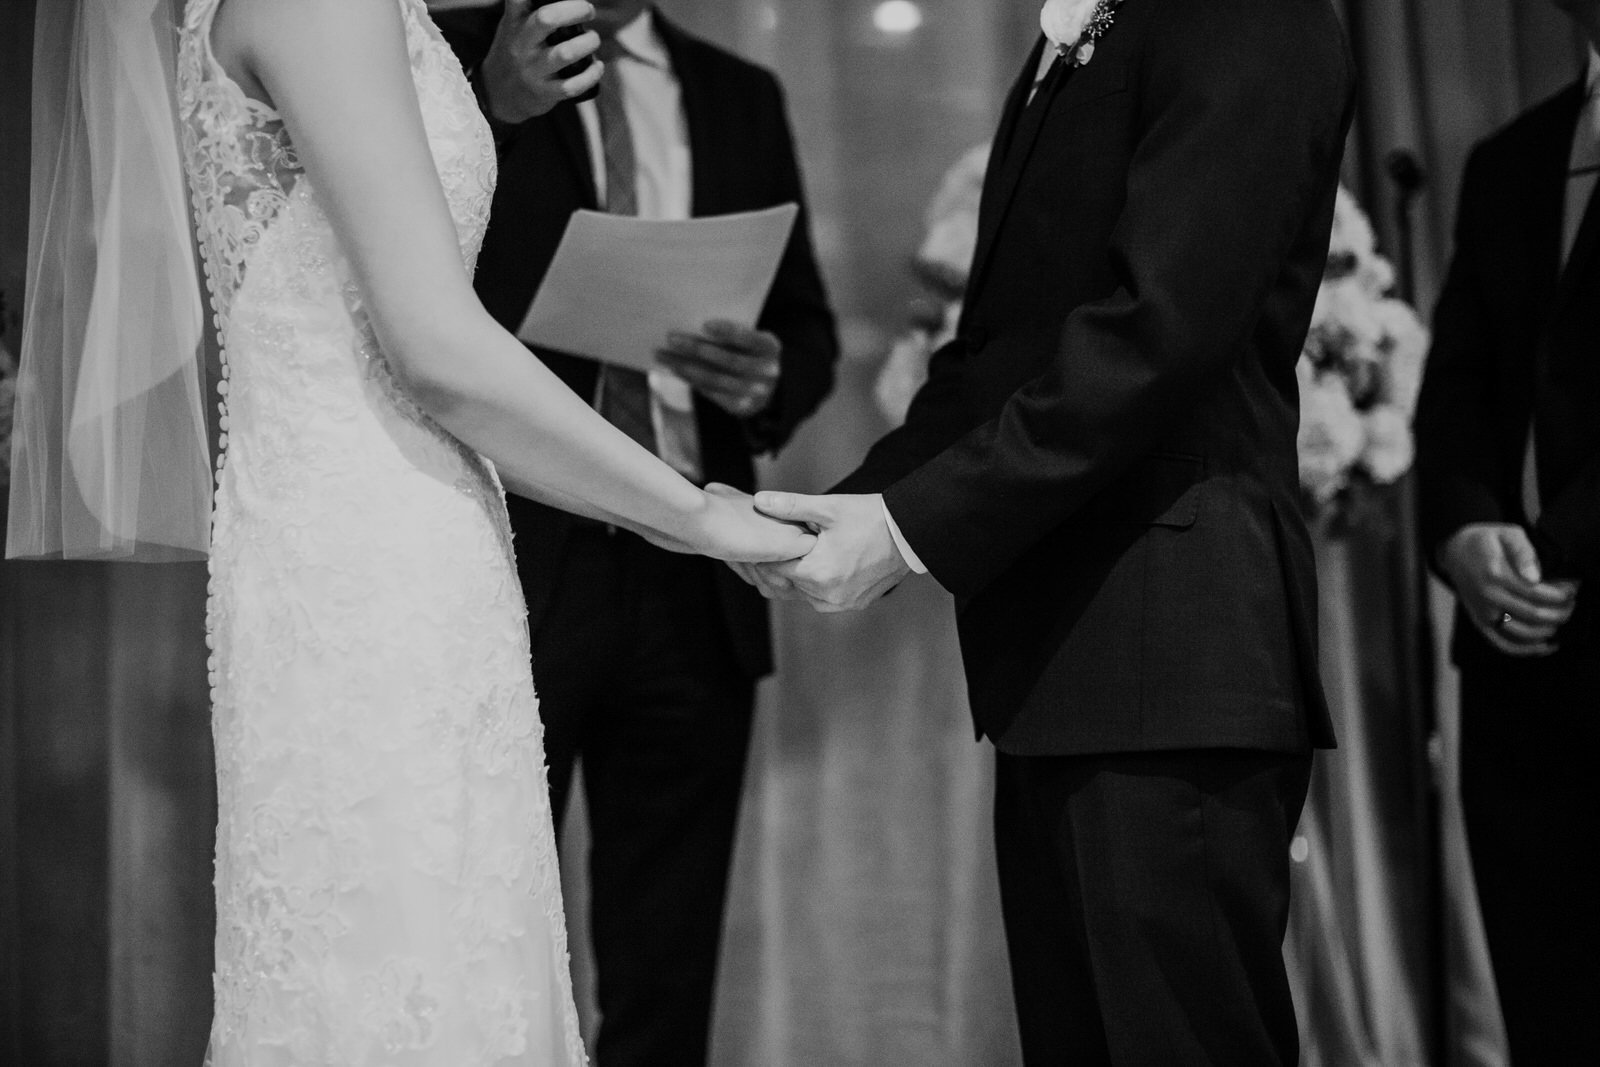 The couple holds hands during their night ceremony at hotel 1000